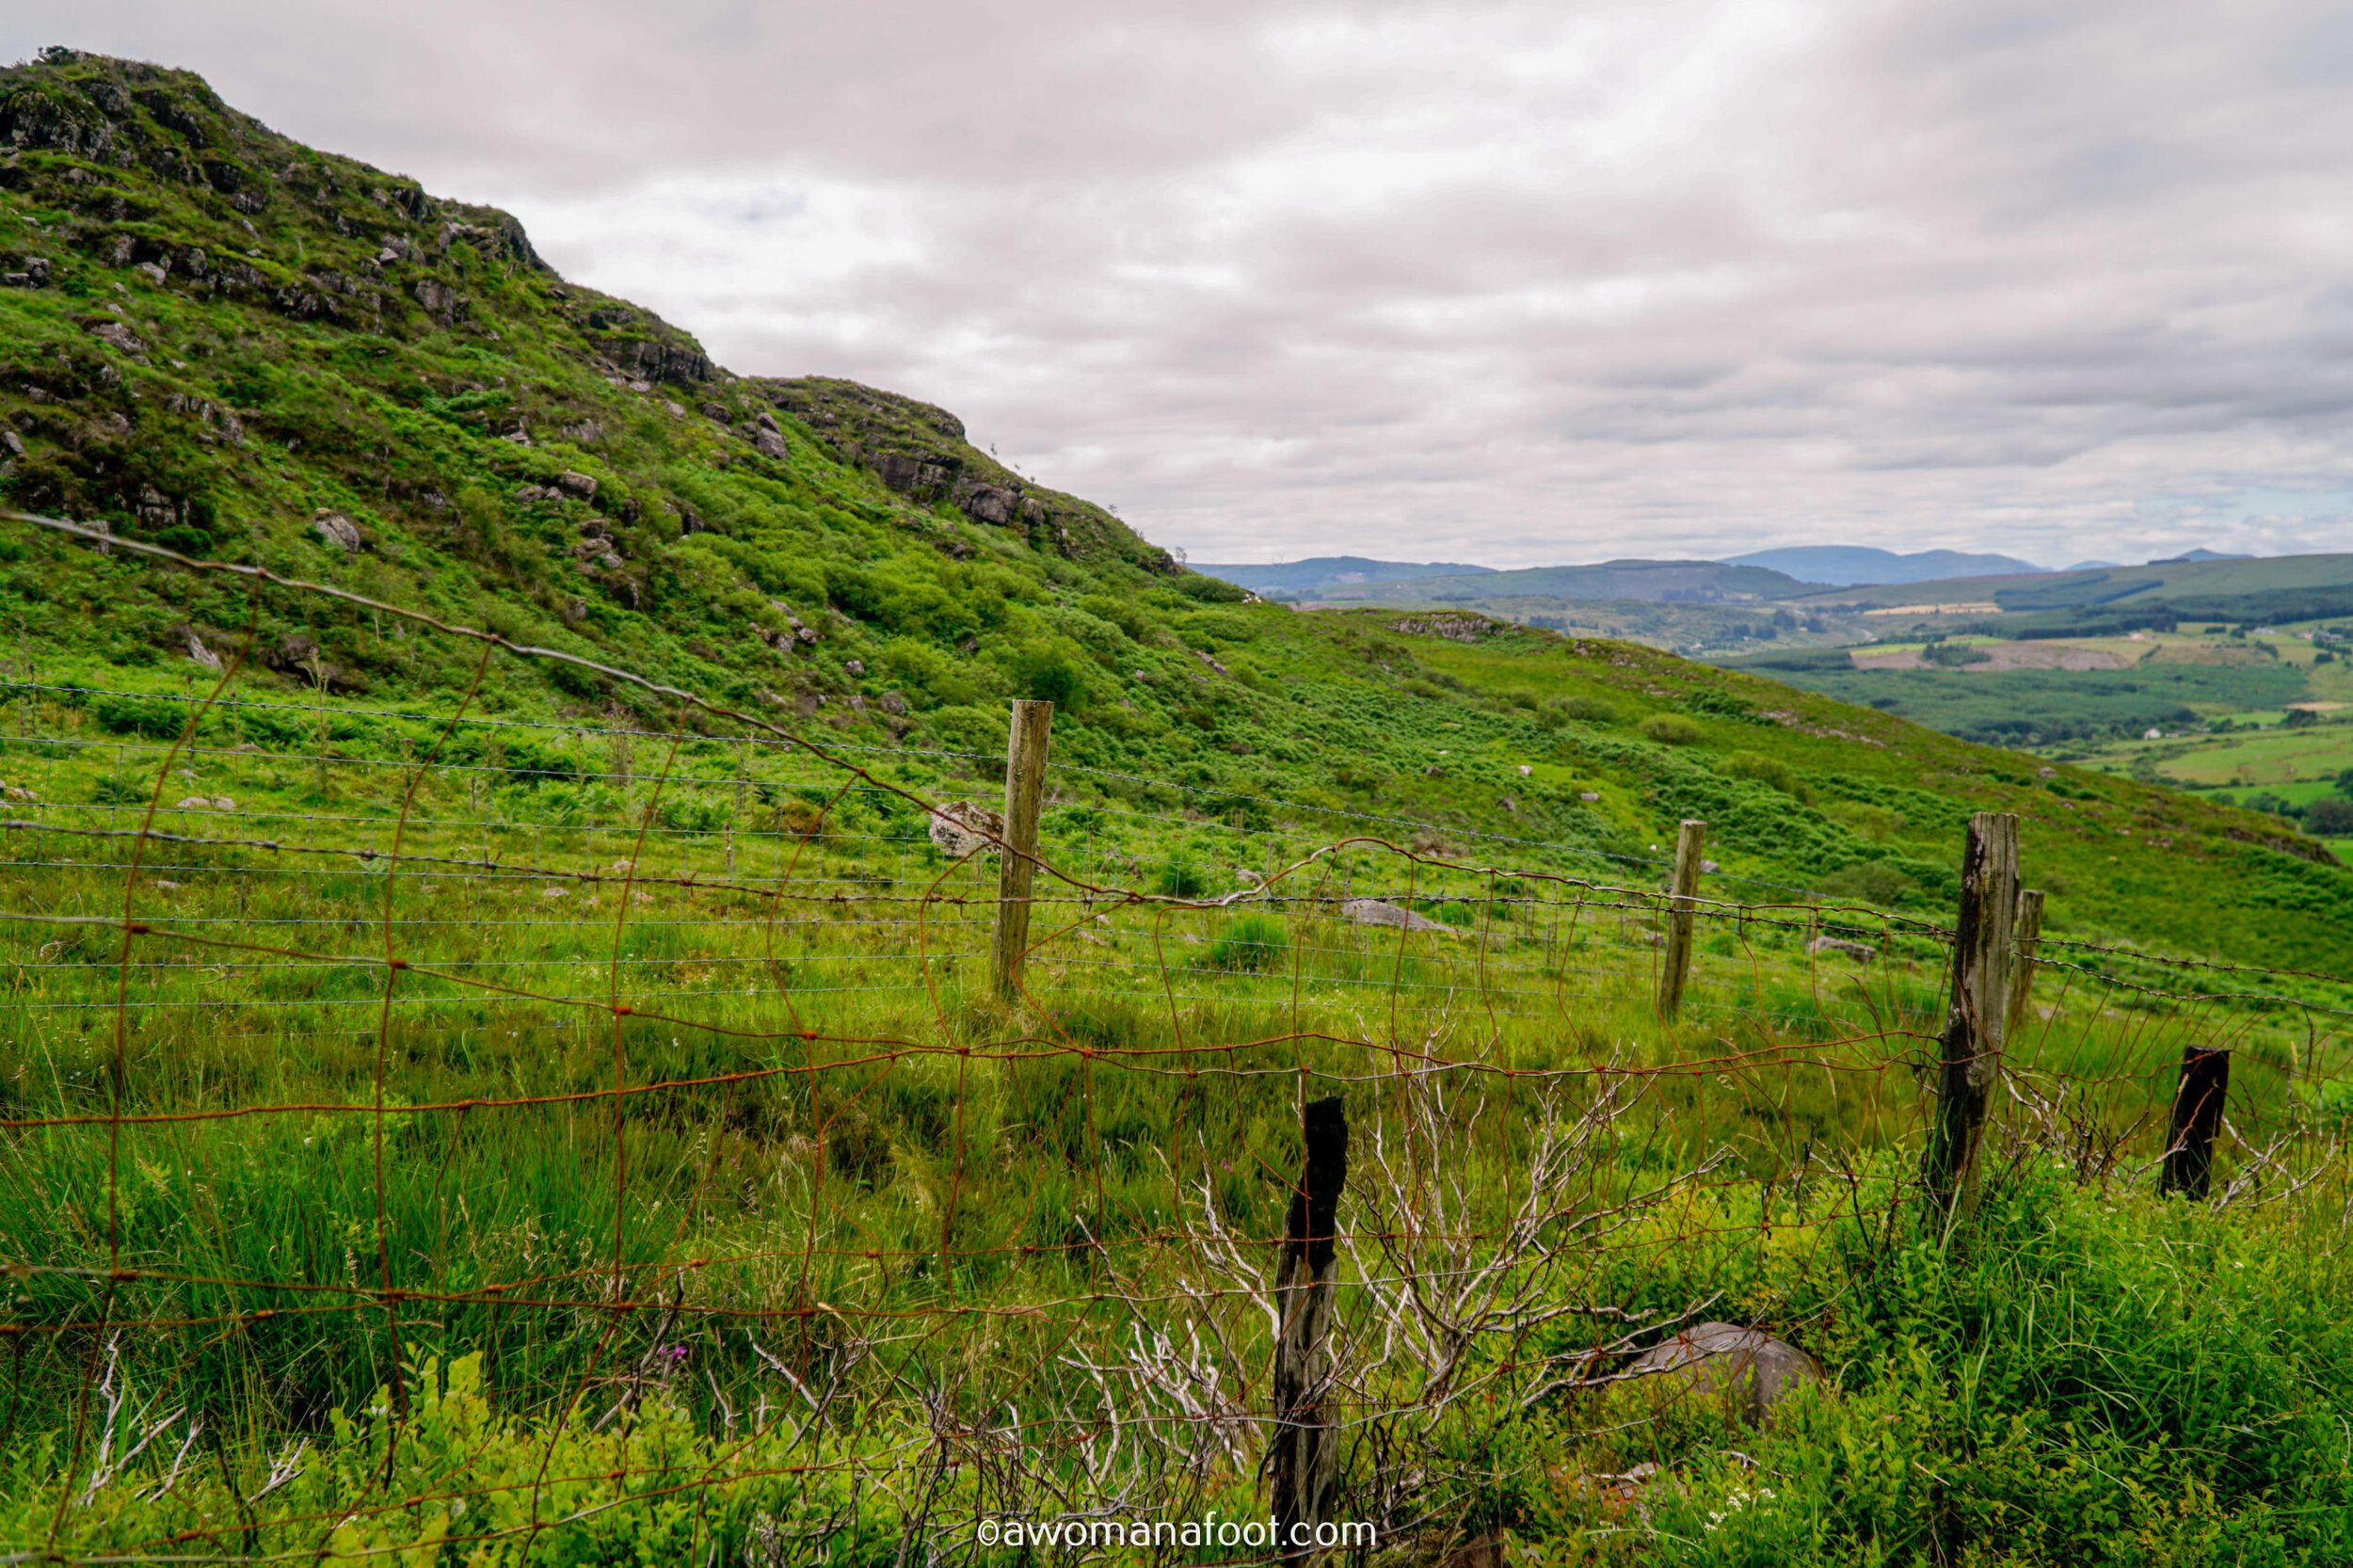 Hiking Solo the beautiful Sli Gaeltacht Mhuscrai trail in Ireland! First part: from Millstreet to Ballyvourney @ awomanafoot.com | Irish Trails | Hiking in Ireland | Active holidays in Ireland | West Cork Trails | Female Solo Hikers | European Trails | #Ireland #Hiking #FemaleSoloTravel #Trails #SliGaeltachtMhuscrai #Cork #HikingSolo